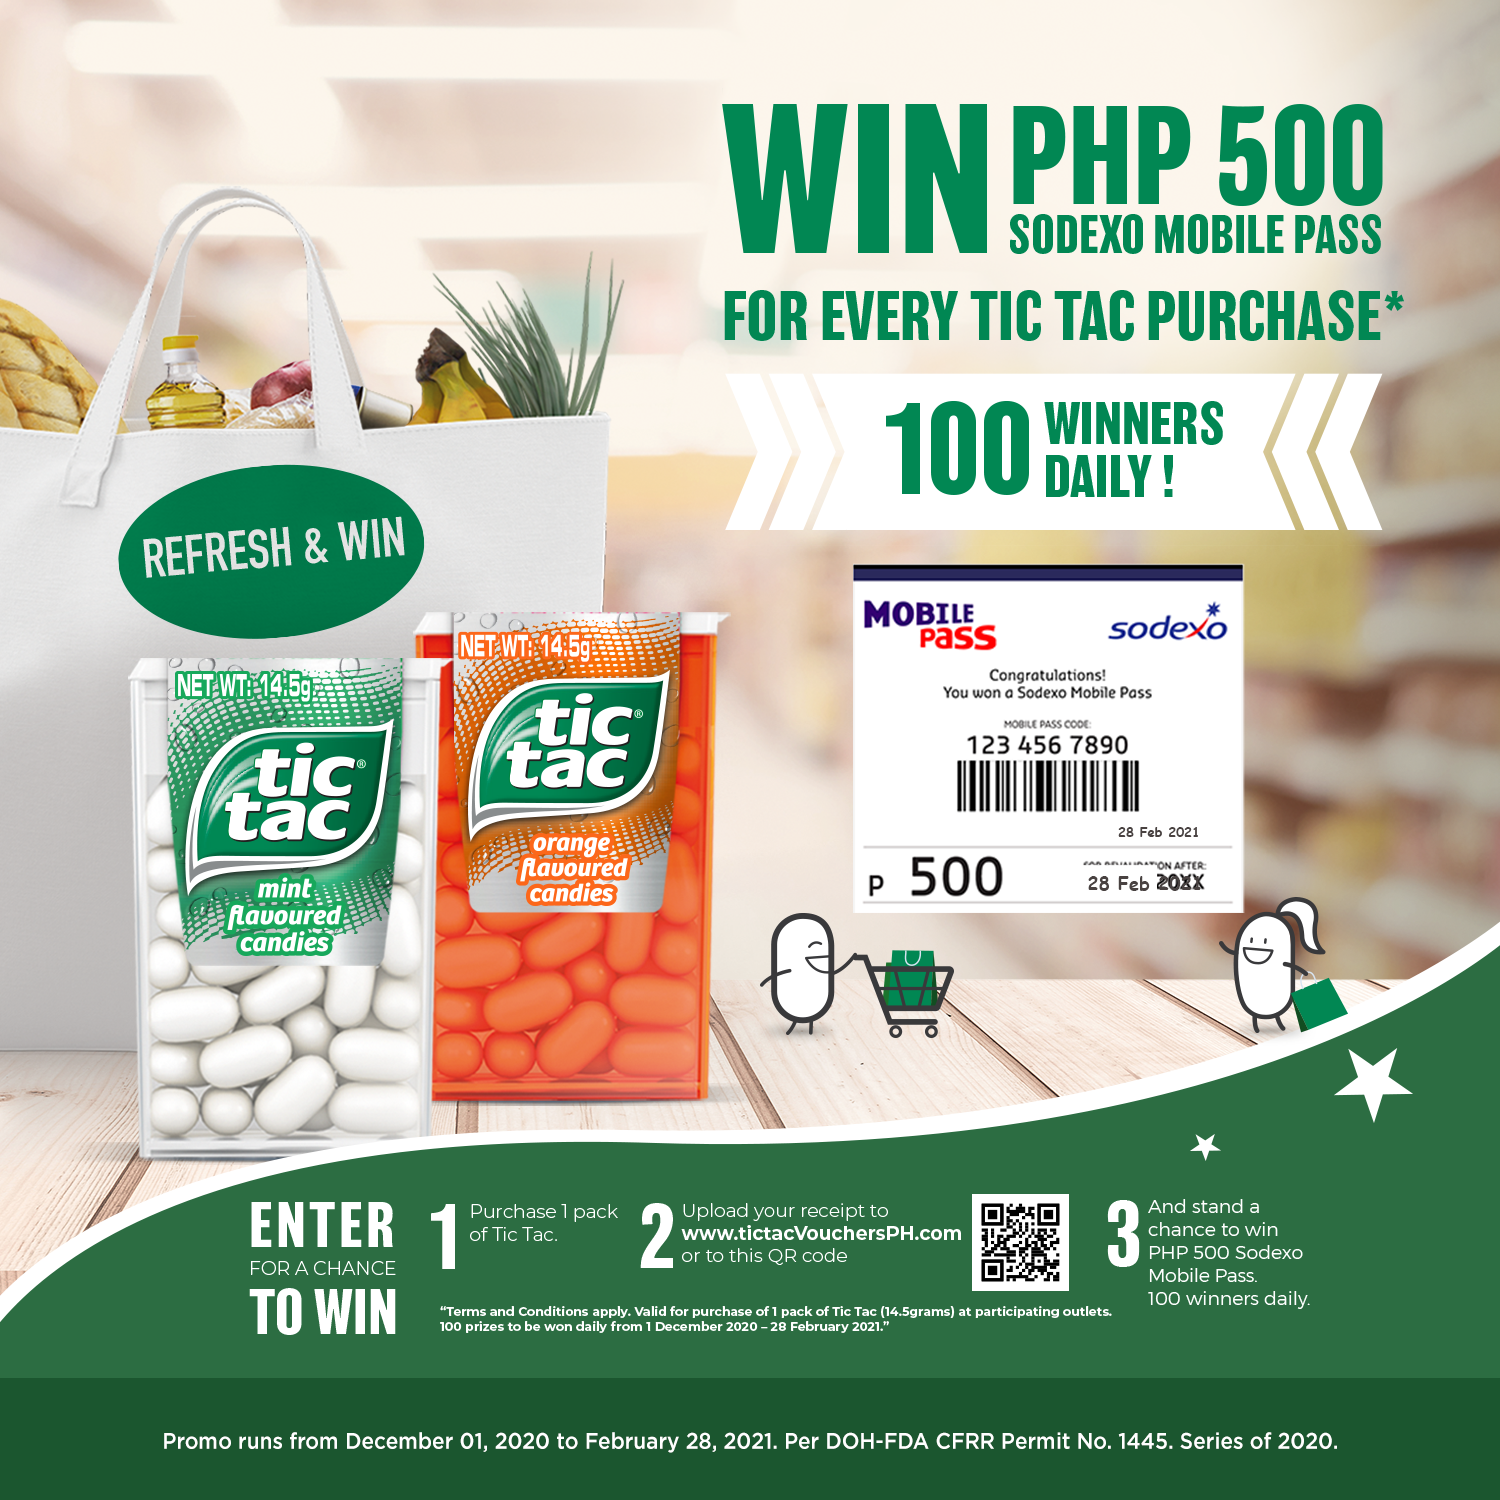 Tic Tac: Tic Tac Refresh and Win